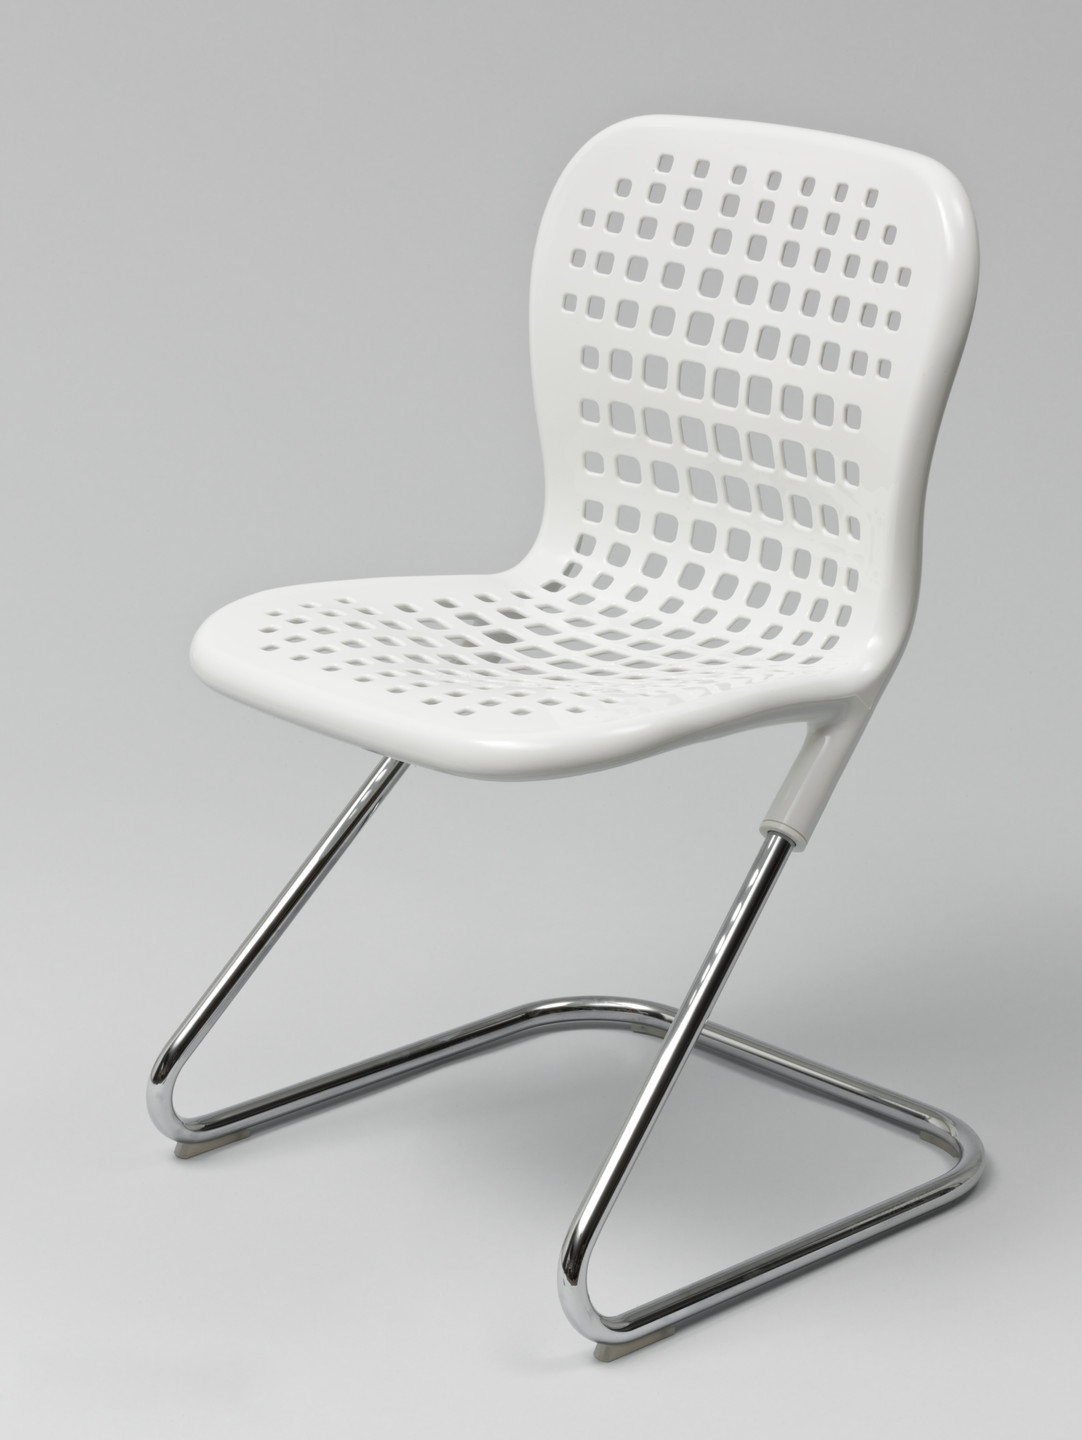 Werner Aisslinger. Nic Chair. 2001